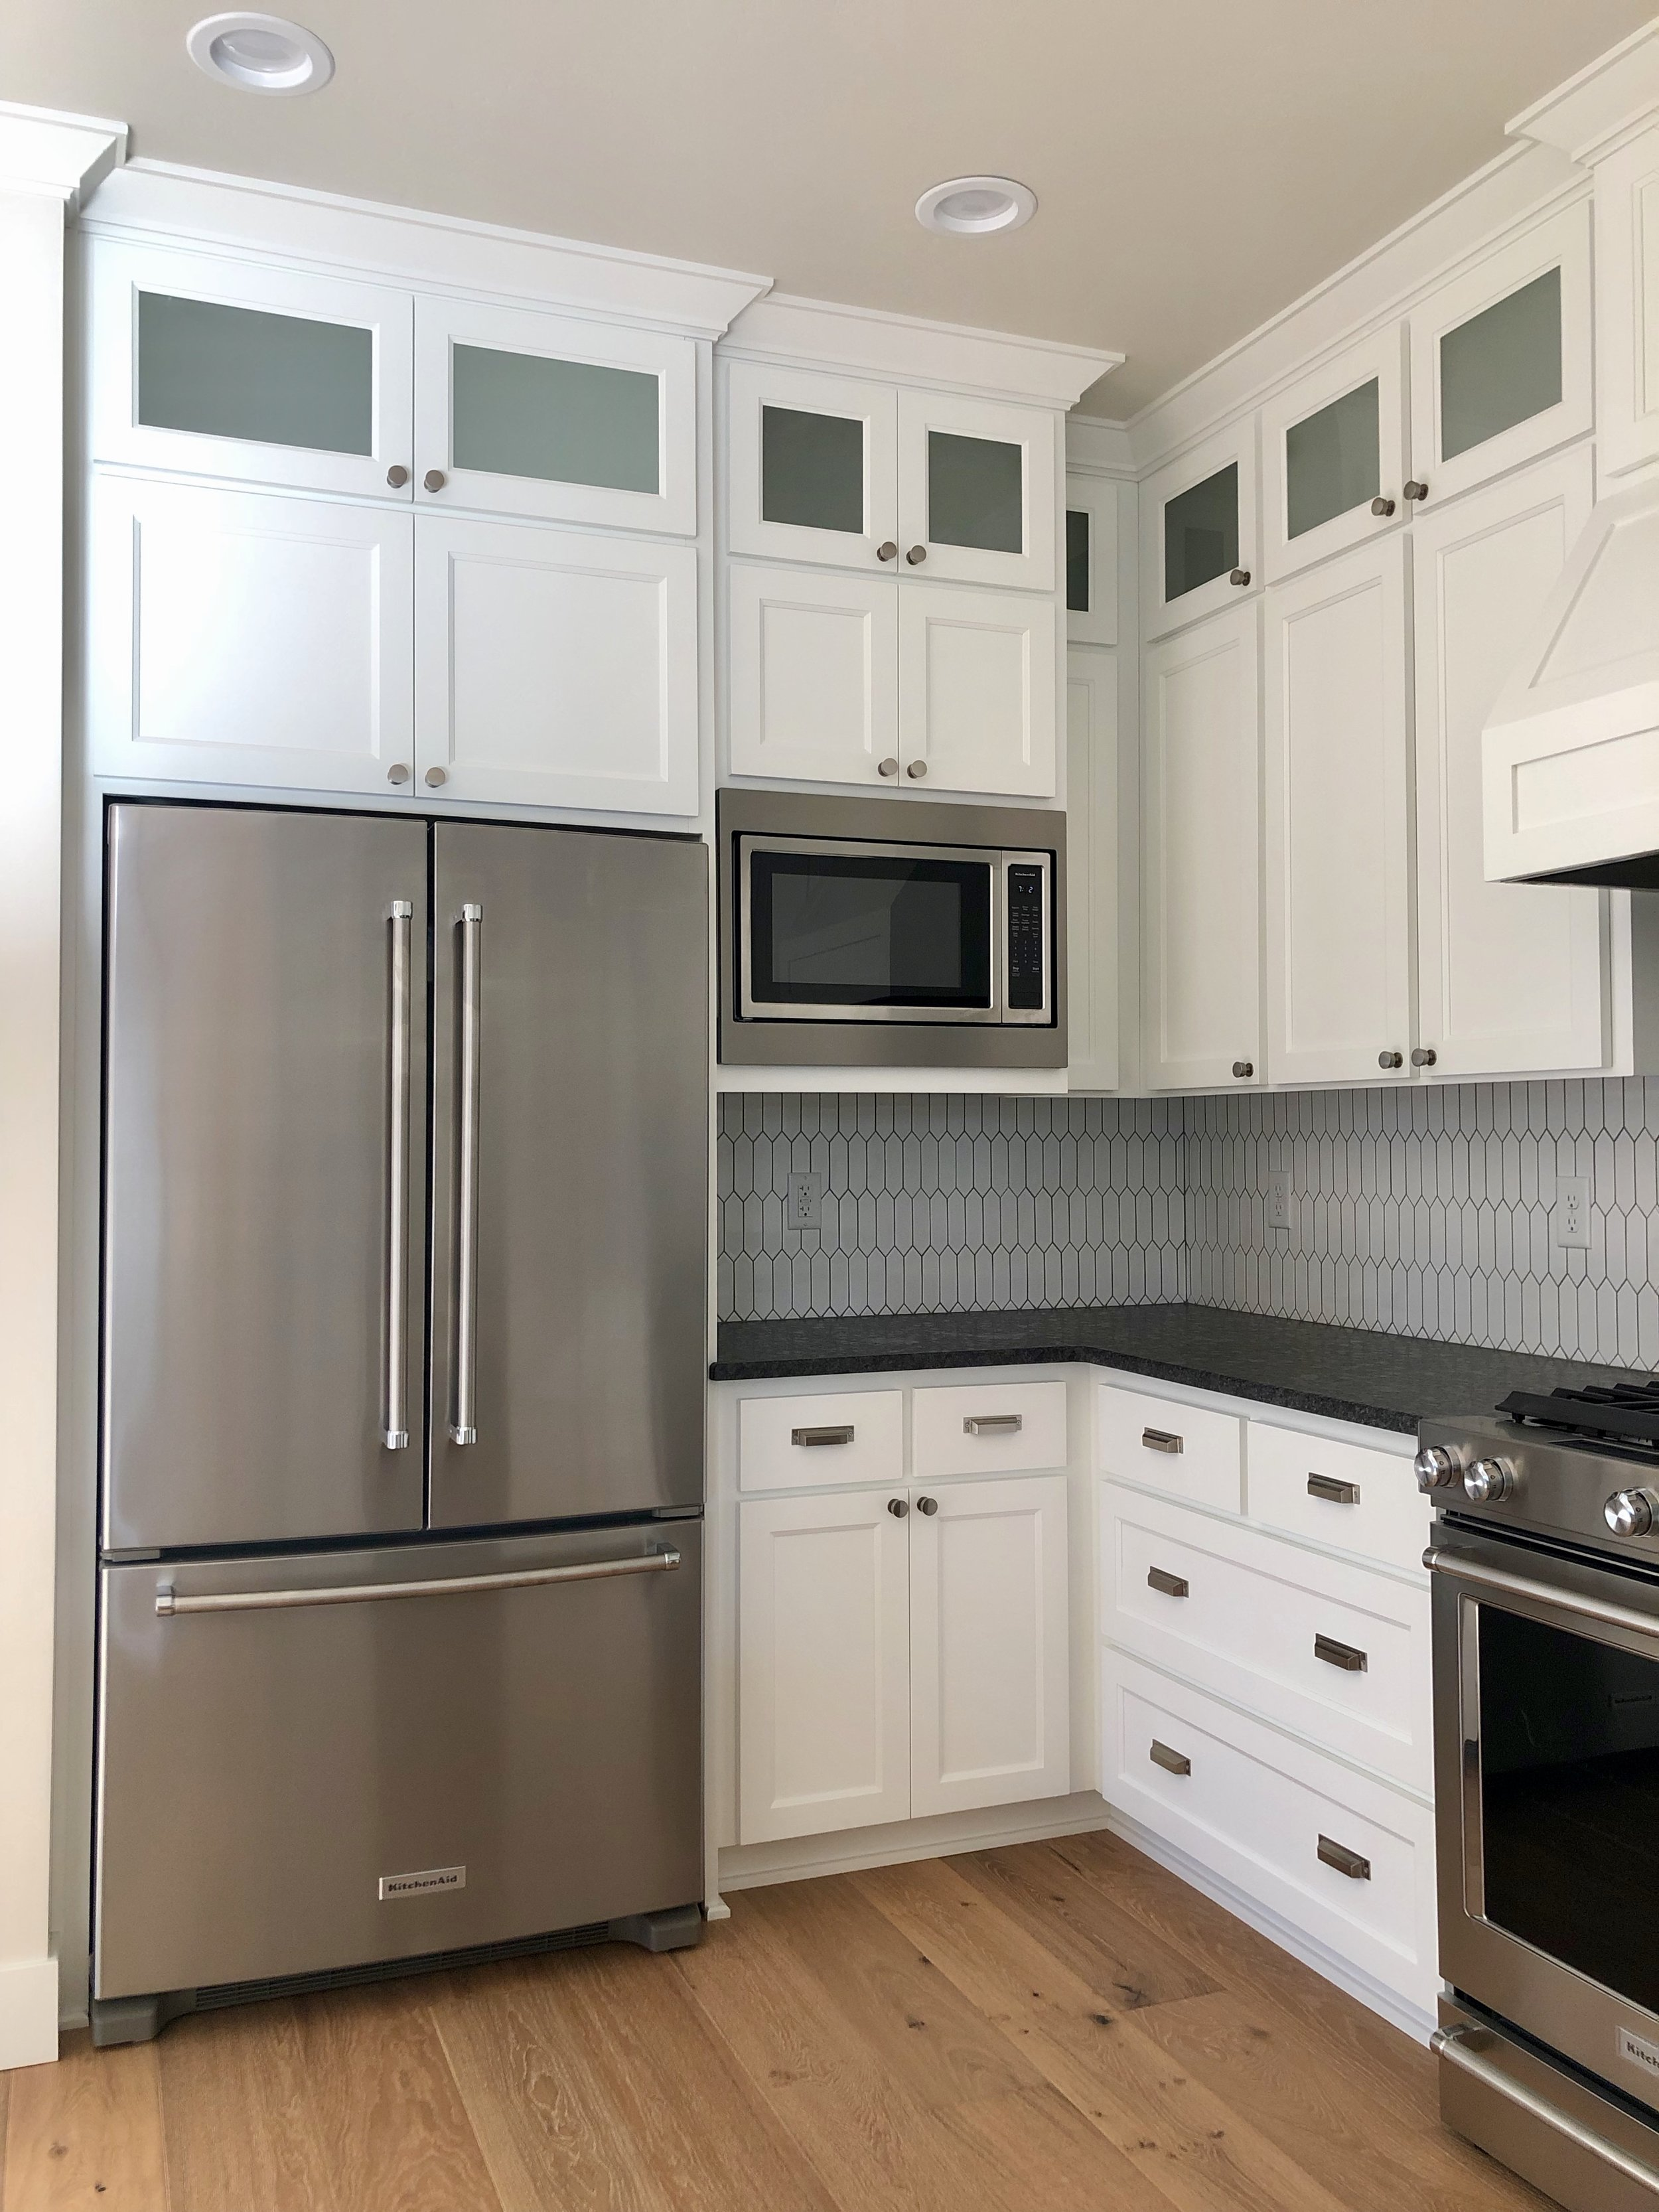 The kitchen is spacious and has a lot of storage. We love the layout and also how from the kitchen you can see out of all the windows, taking in the beautiful Ashland views.